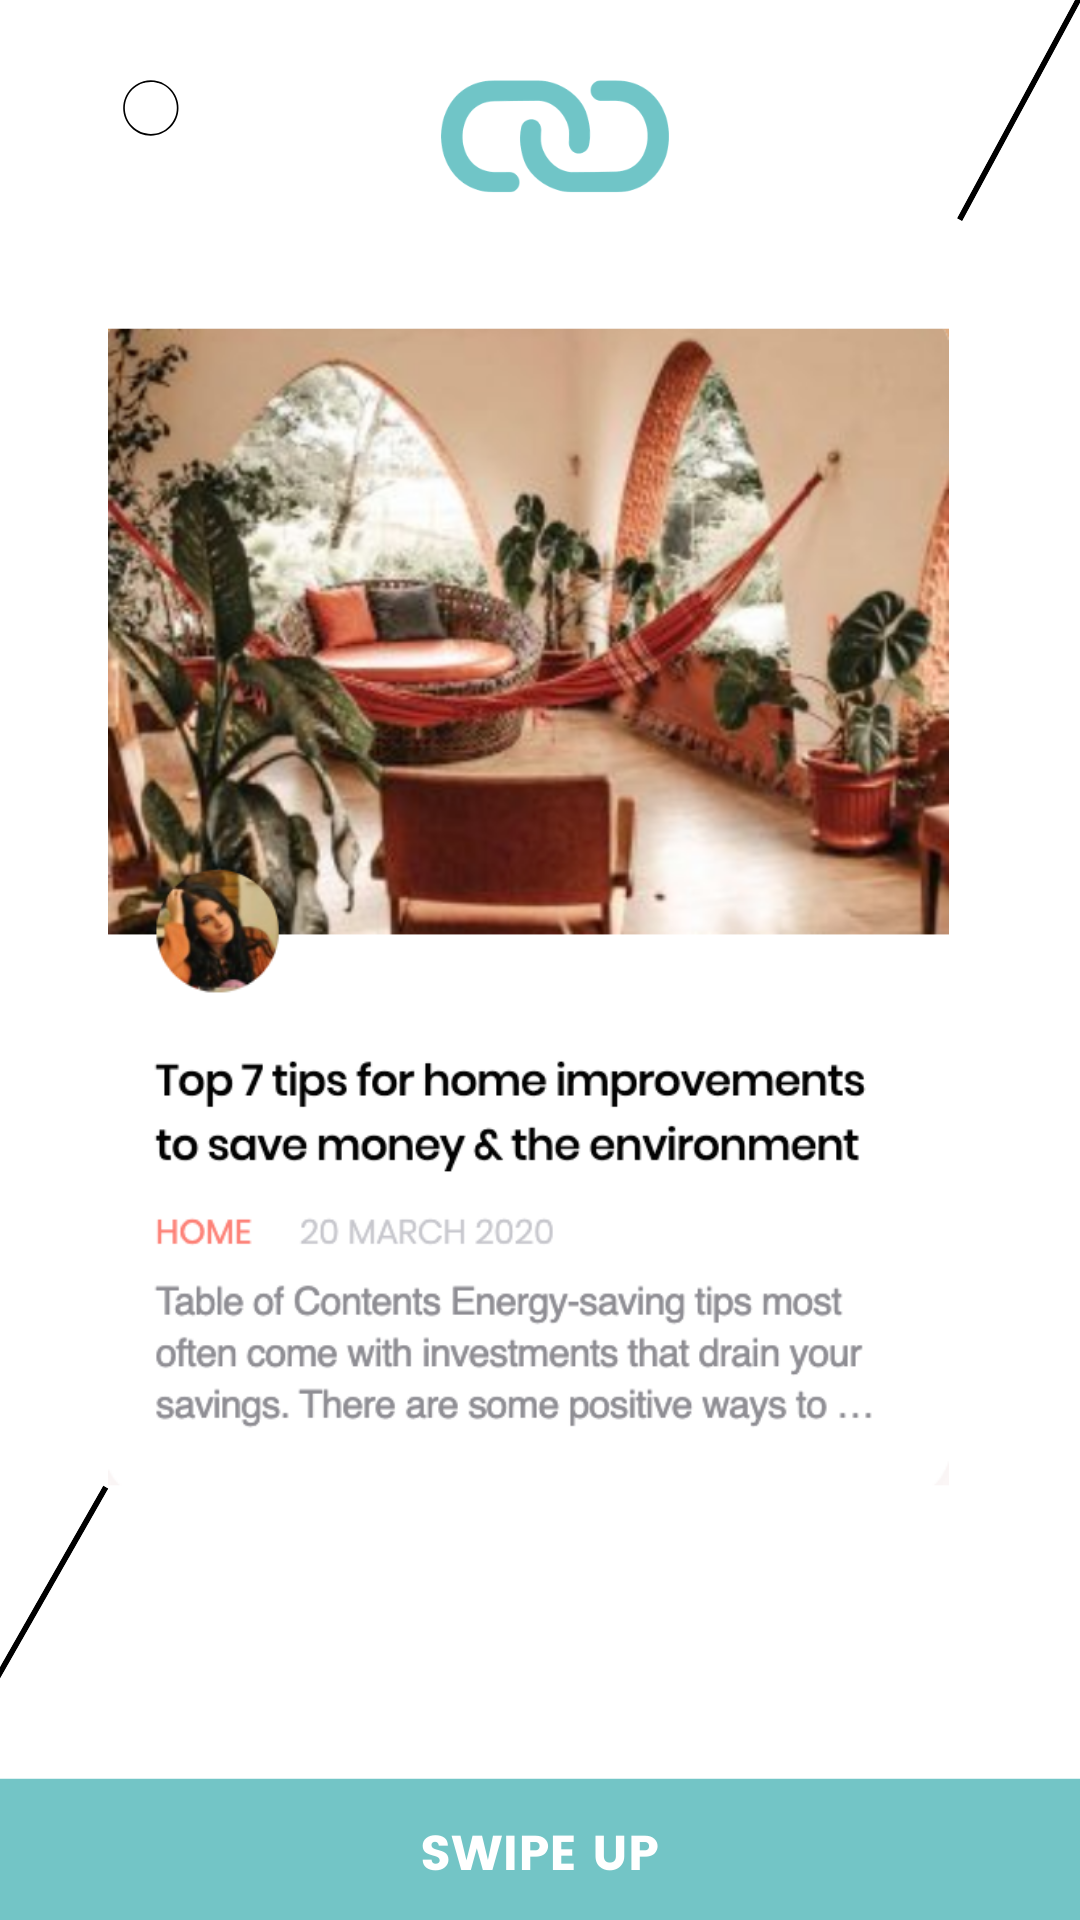 Top 7 tips for home improvements to save money & the